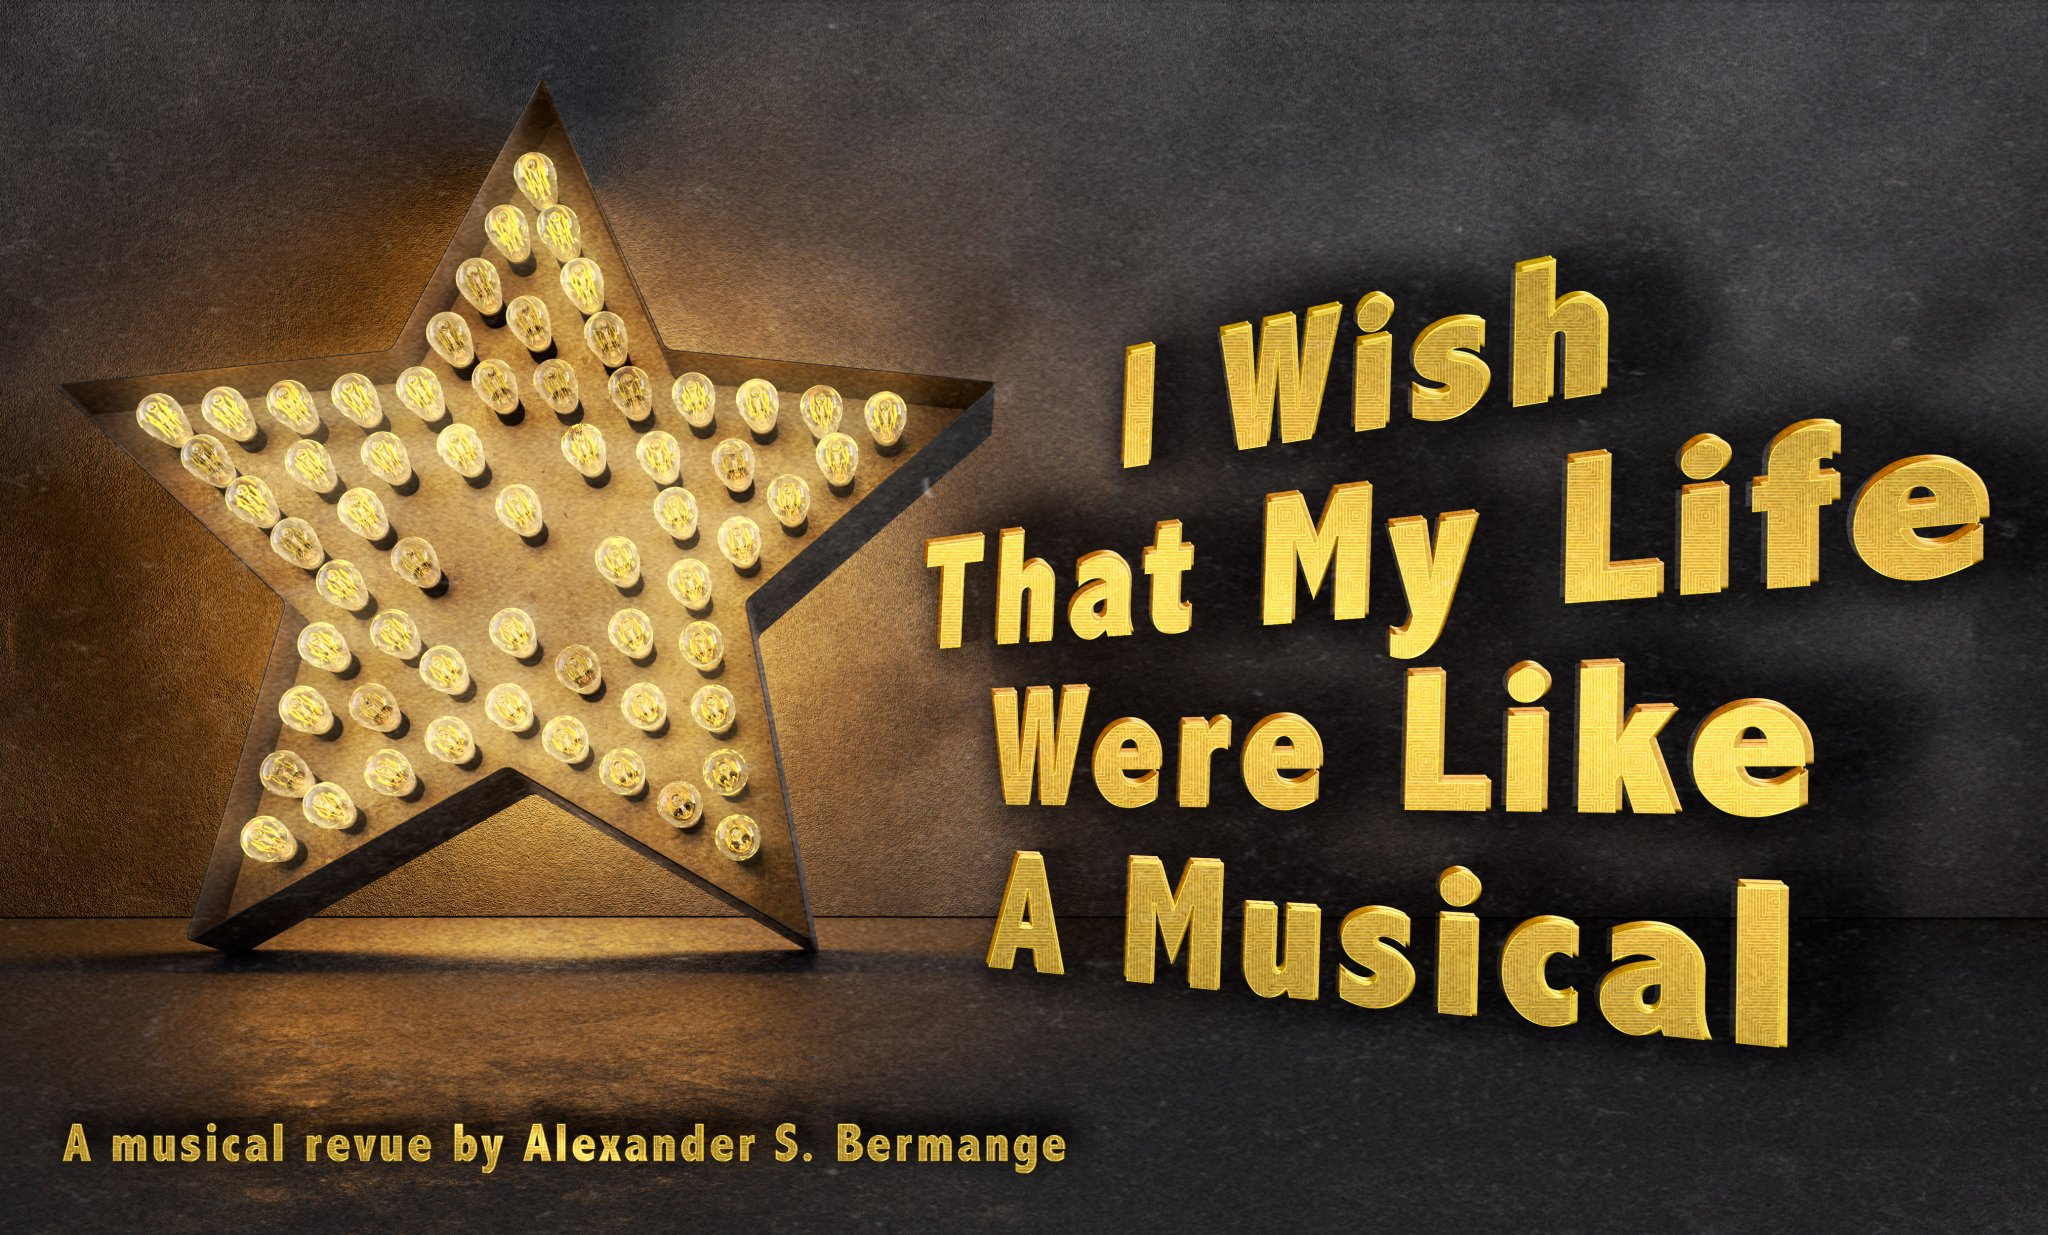 i-wish-my-life-were-like-a-musical-premiere-tons-of-stagefaves-cabarets-in-new-live-at-zedel-season